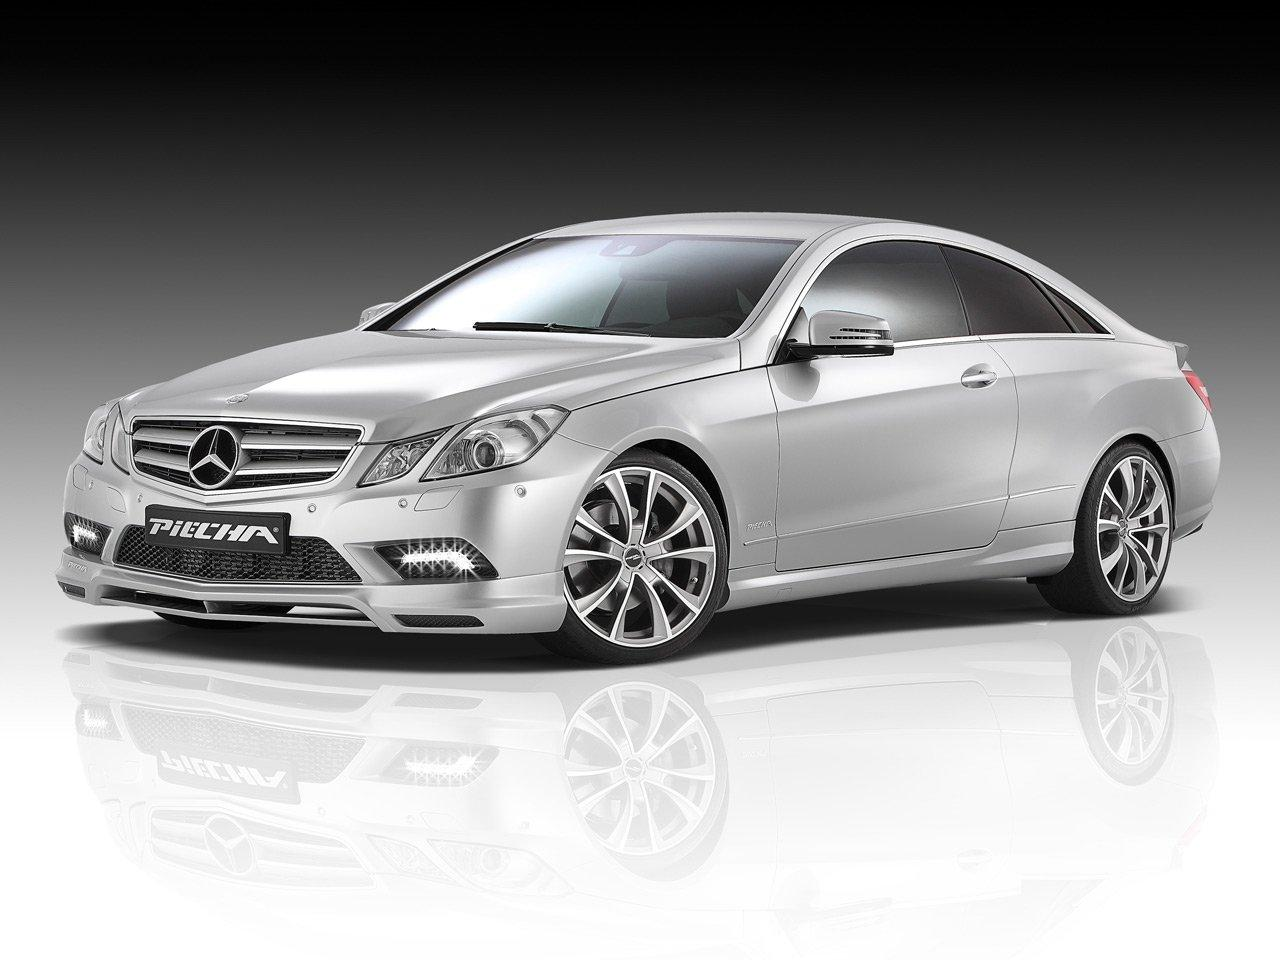 Mercedes E-Class by Piecha Design